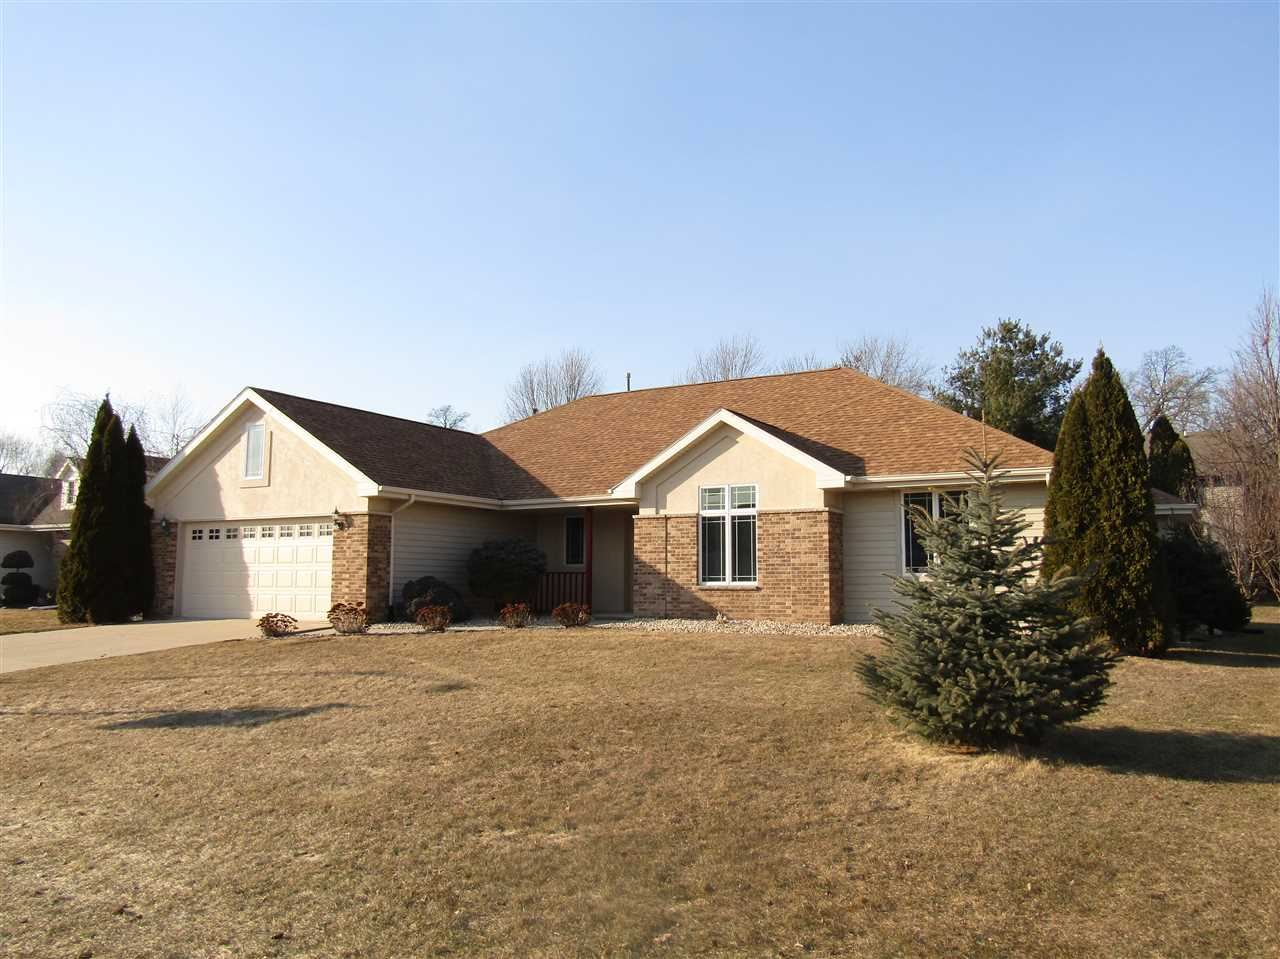 3635 Westminster Rd, Janesville, WI 53546 - #: 1878688